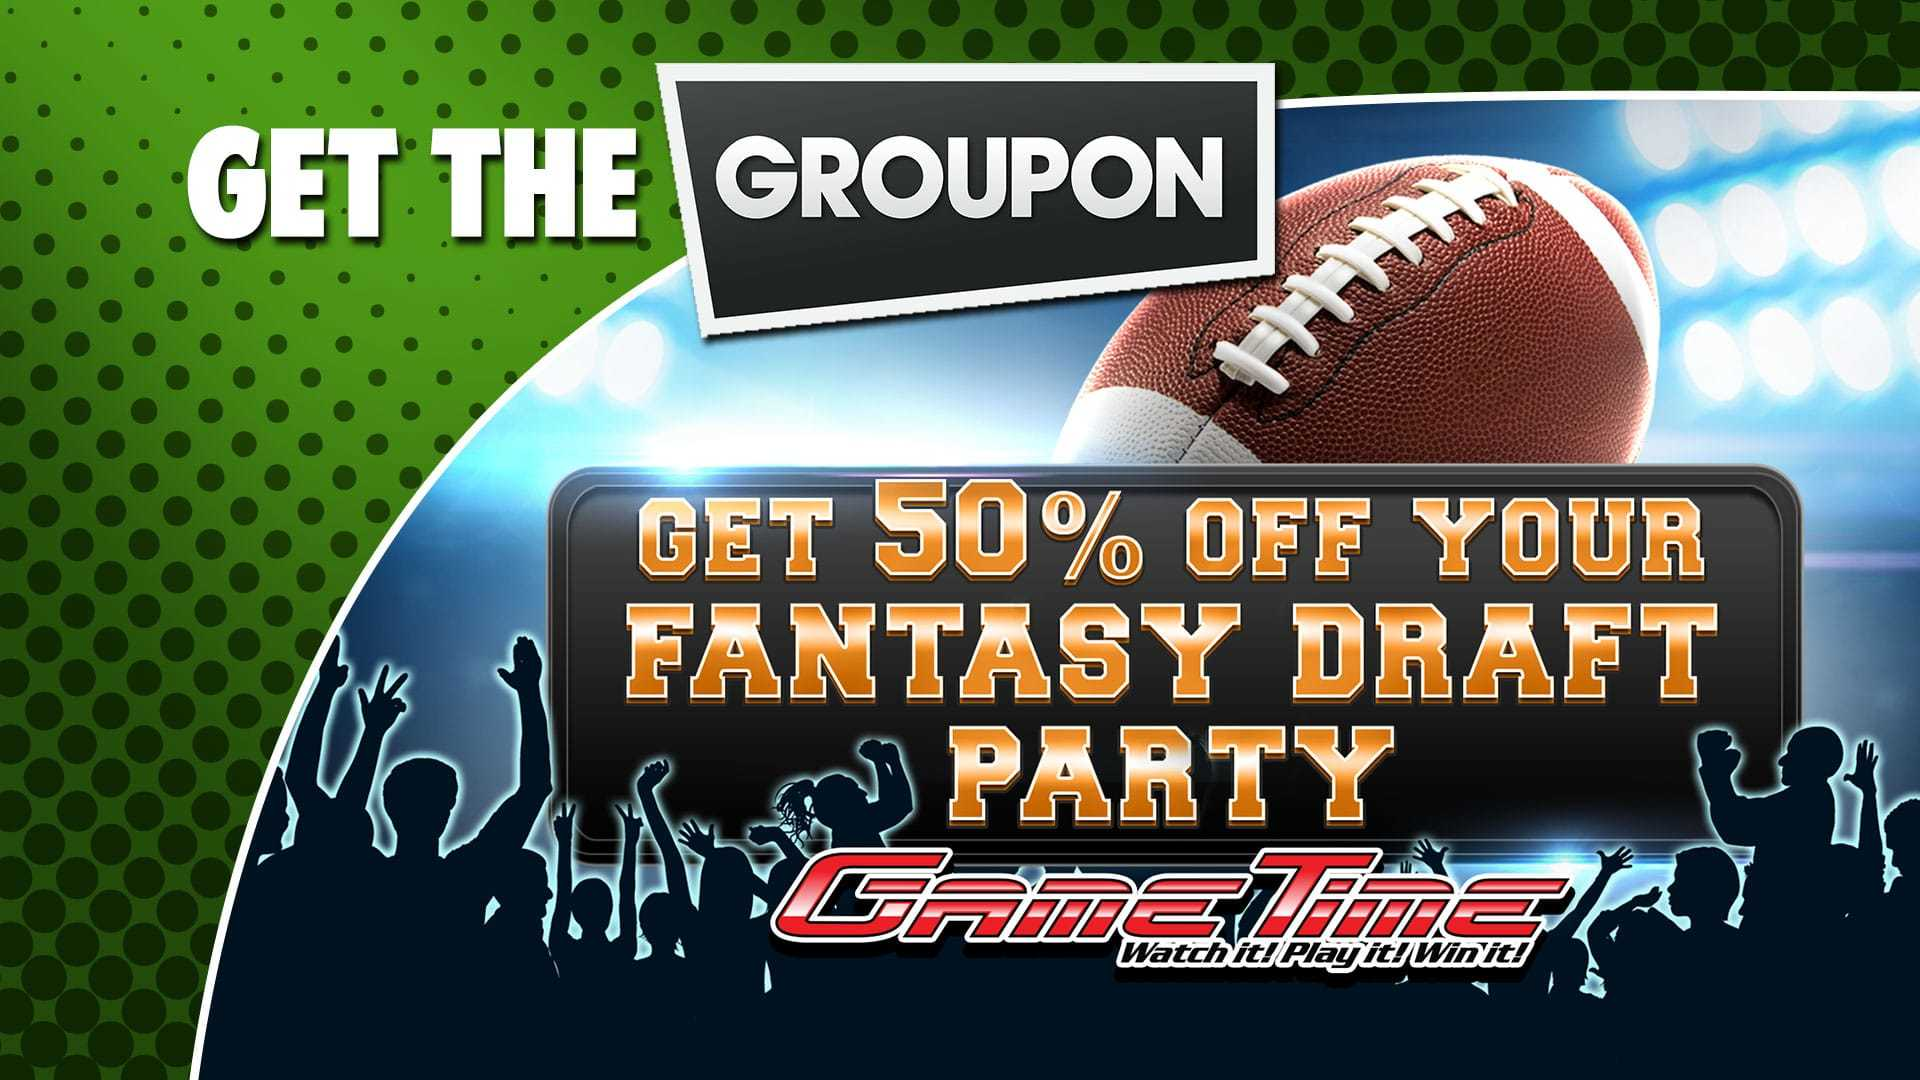 GameTime Fantasy Football Draft Party Deal on Groupon